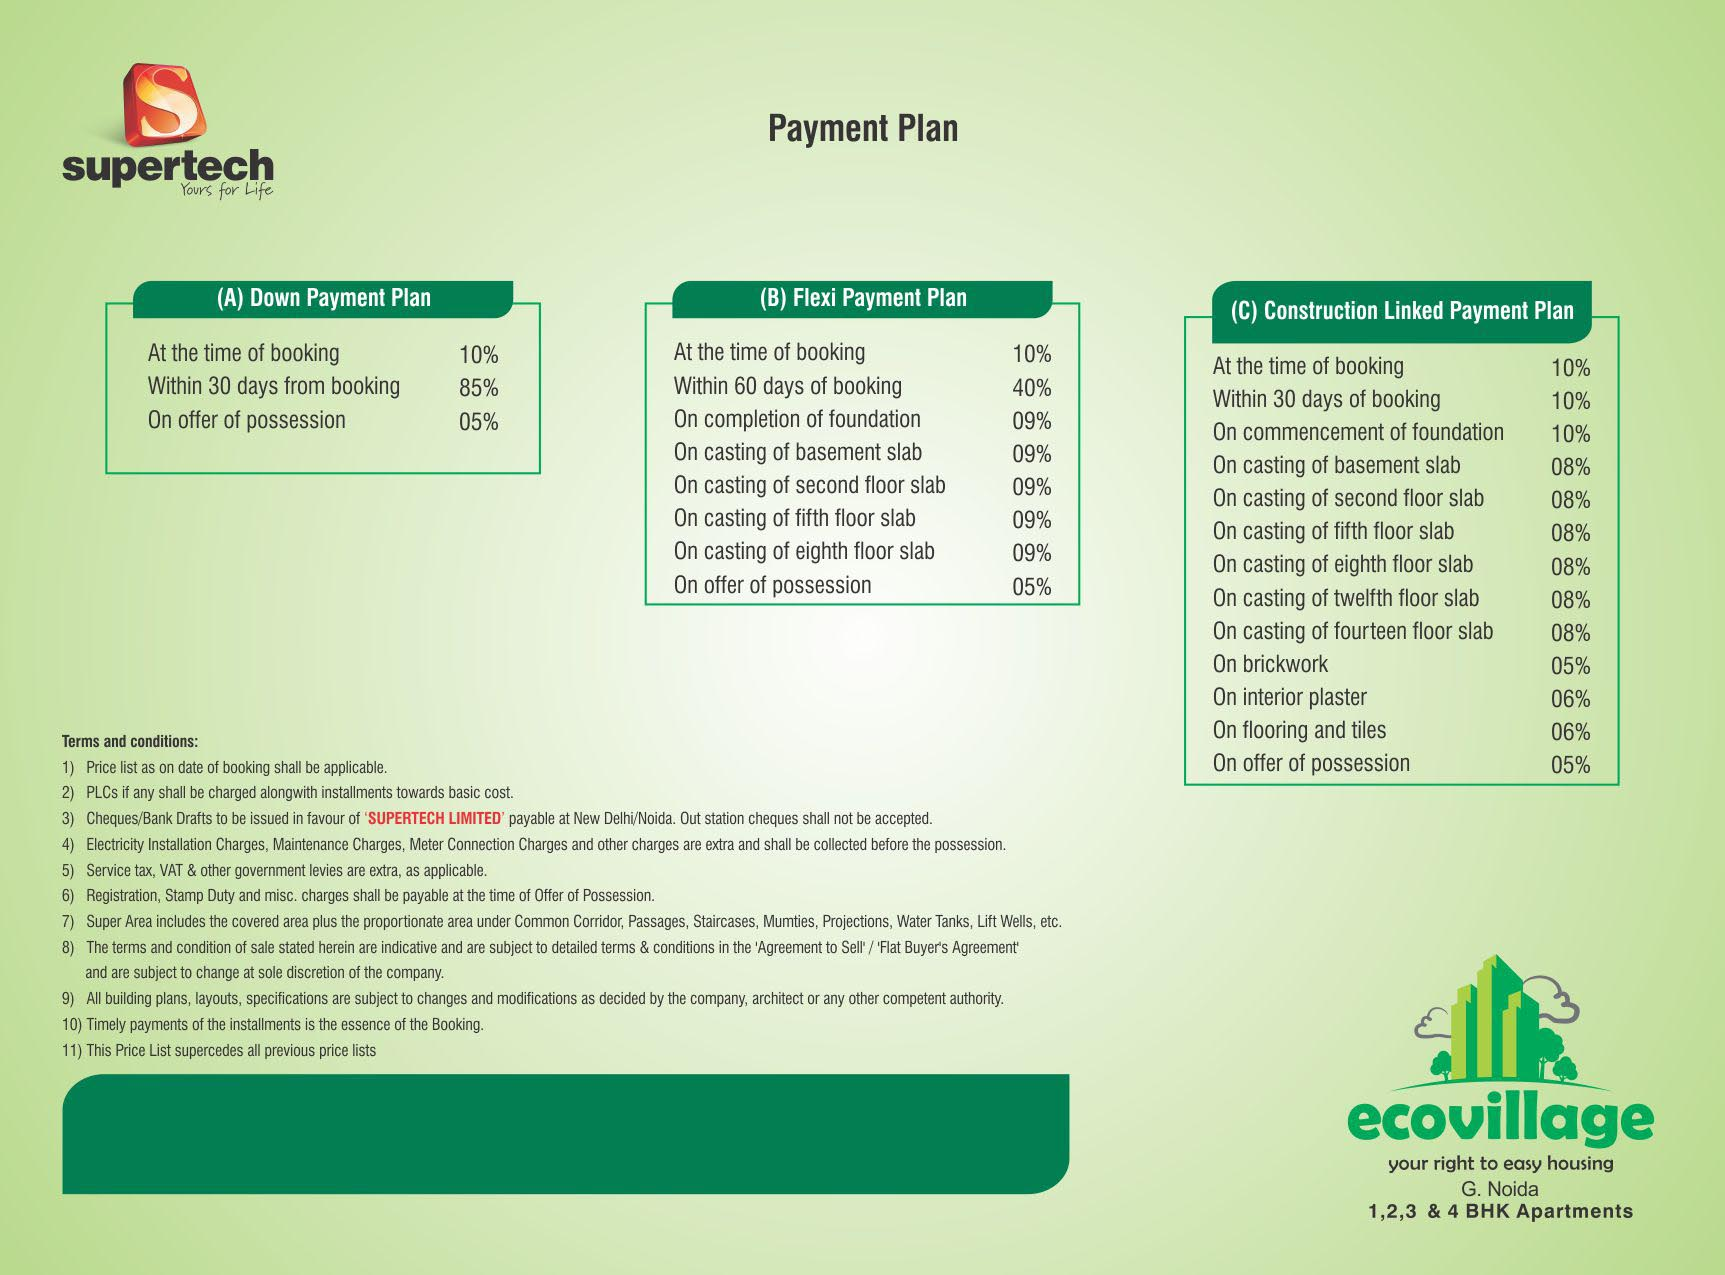 supertech-eco-village-payment plan